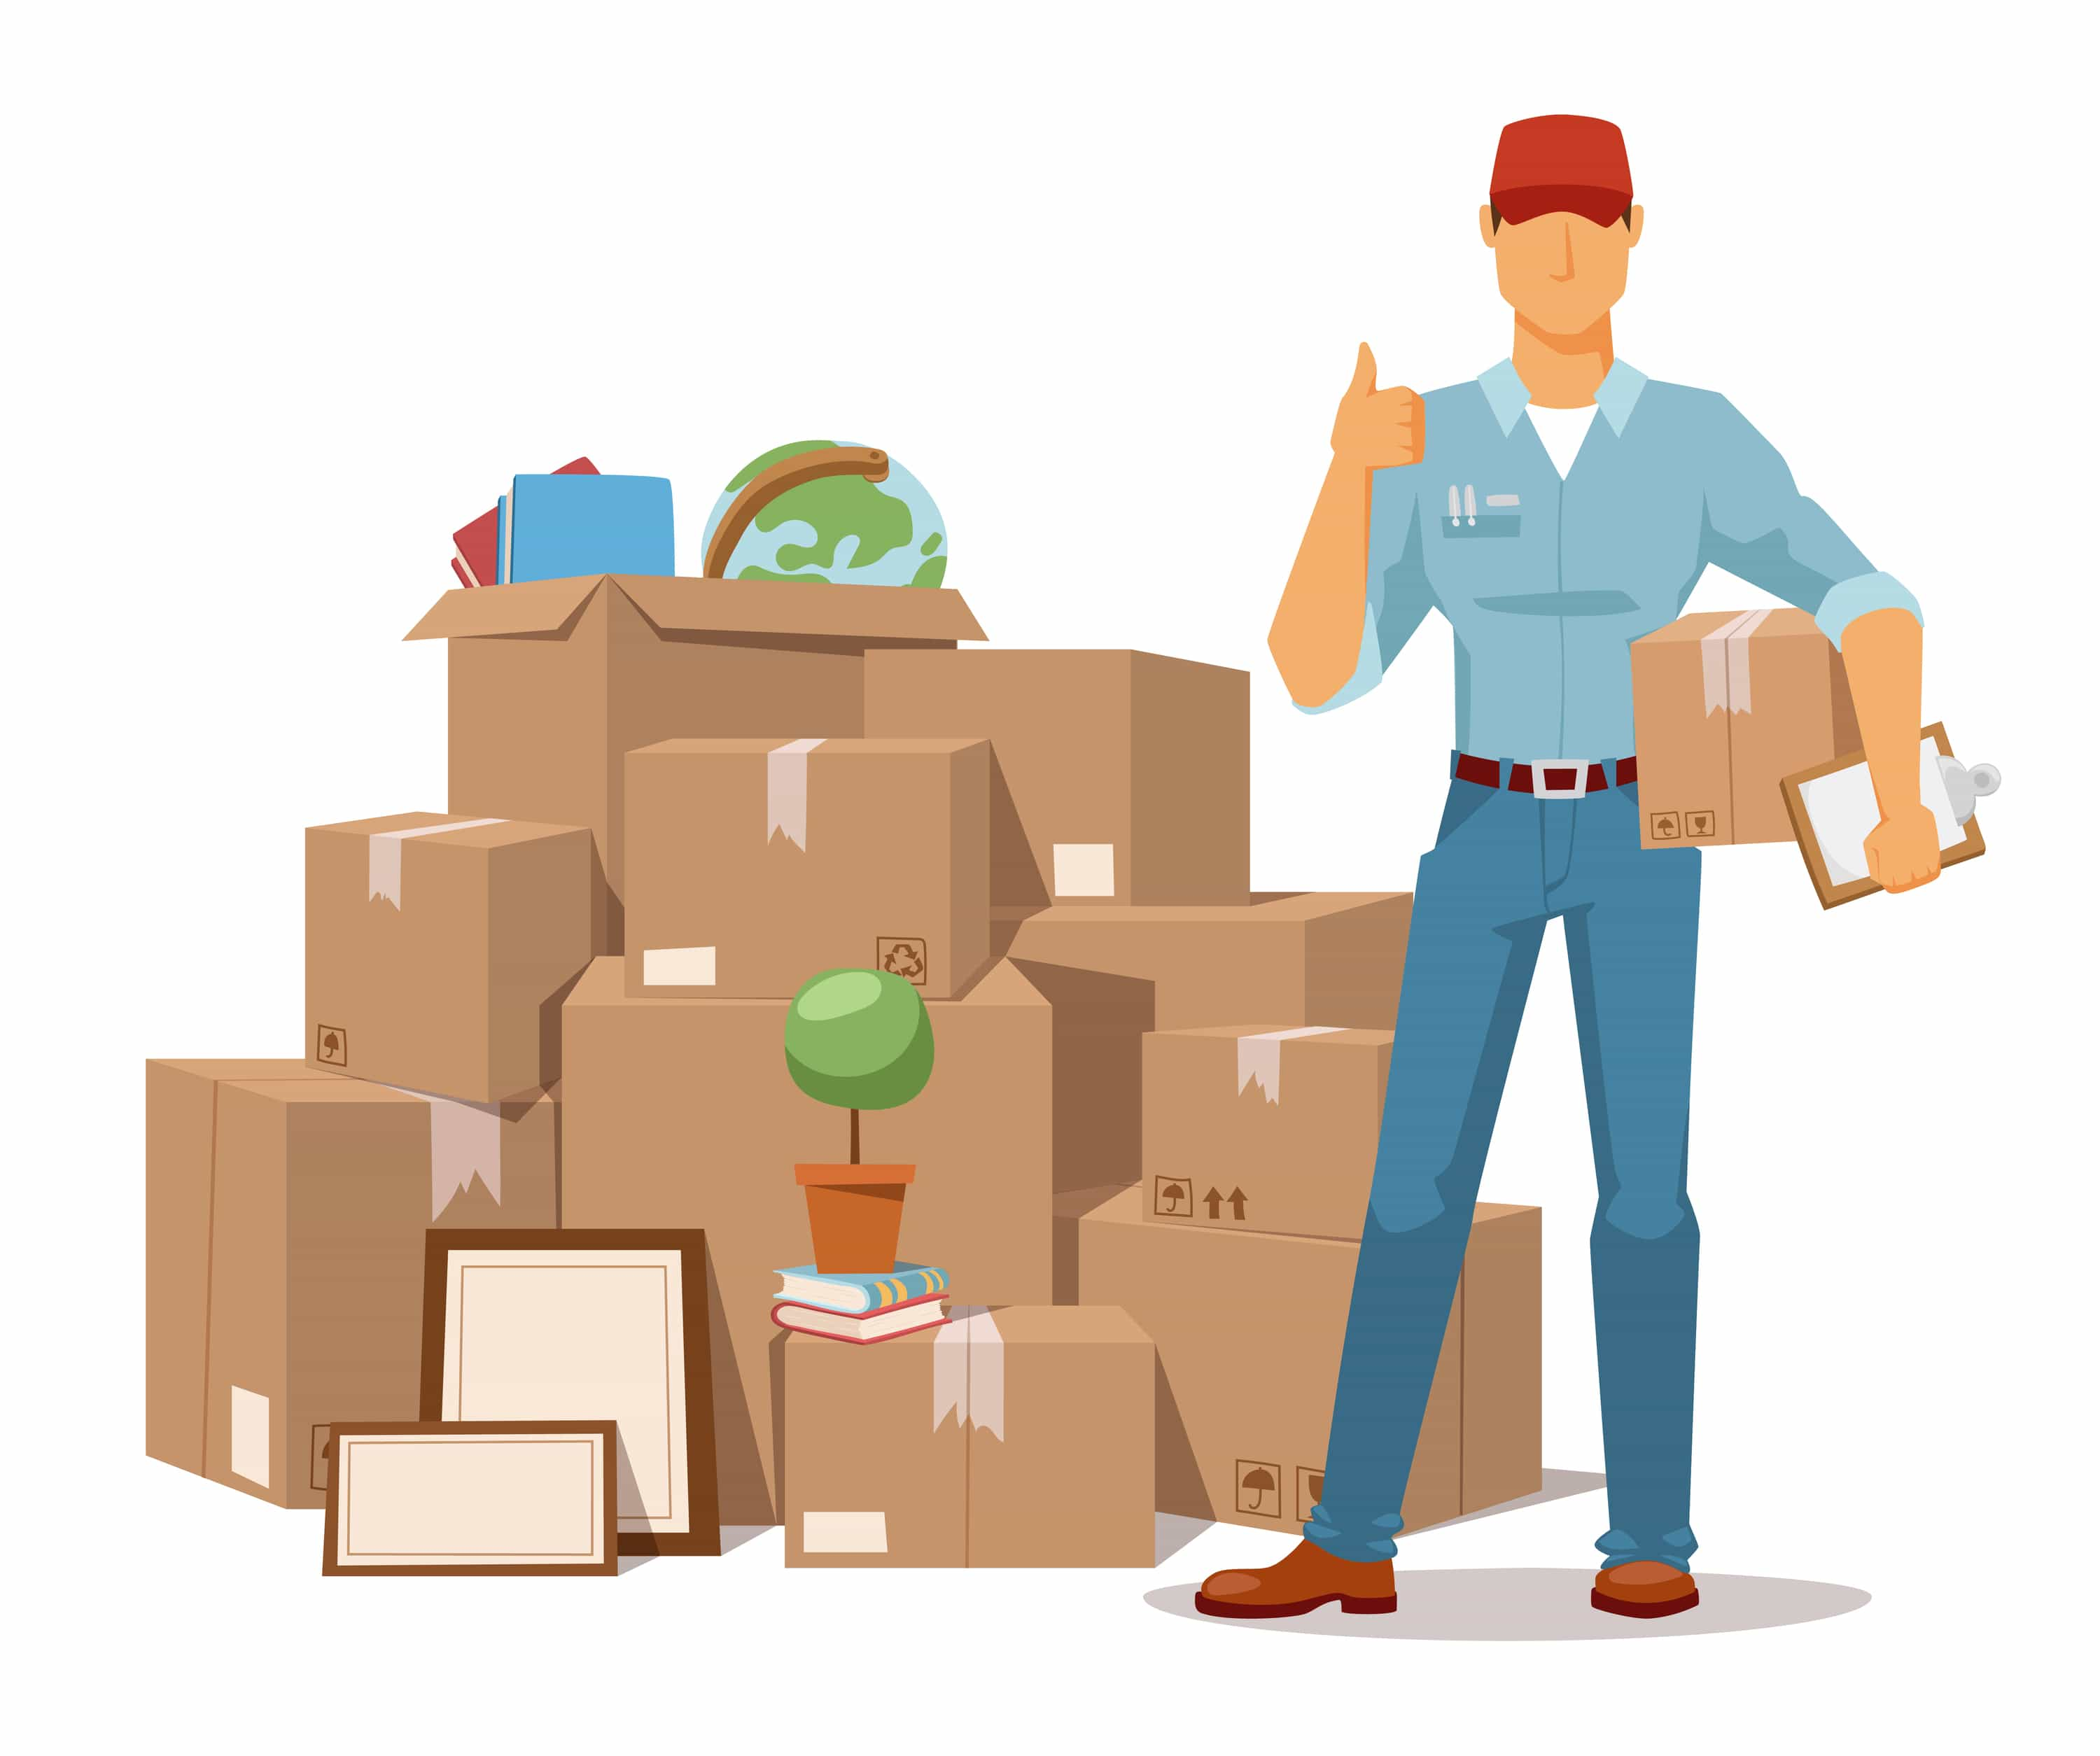 Move service man Ok hand and box vector illustration. Move box and men. Craft box isolated on background. Box for moving, open box. Move business, moving box, relocation box open. Transportation package cargo service